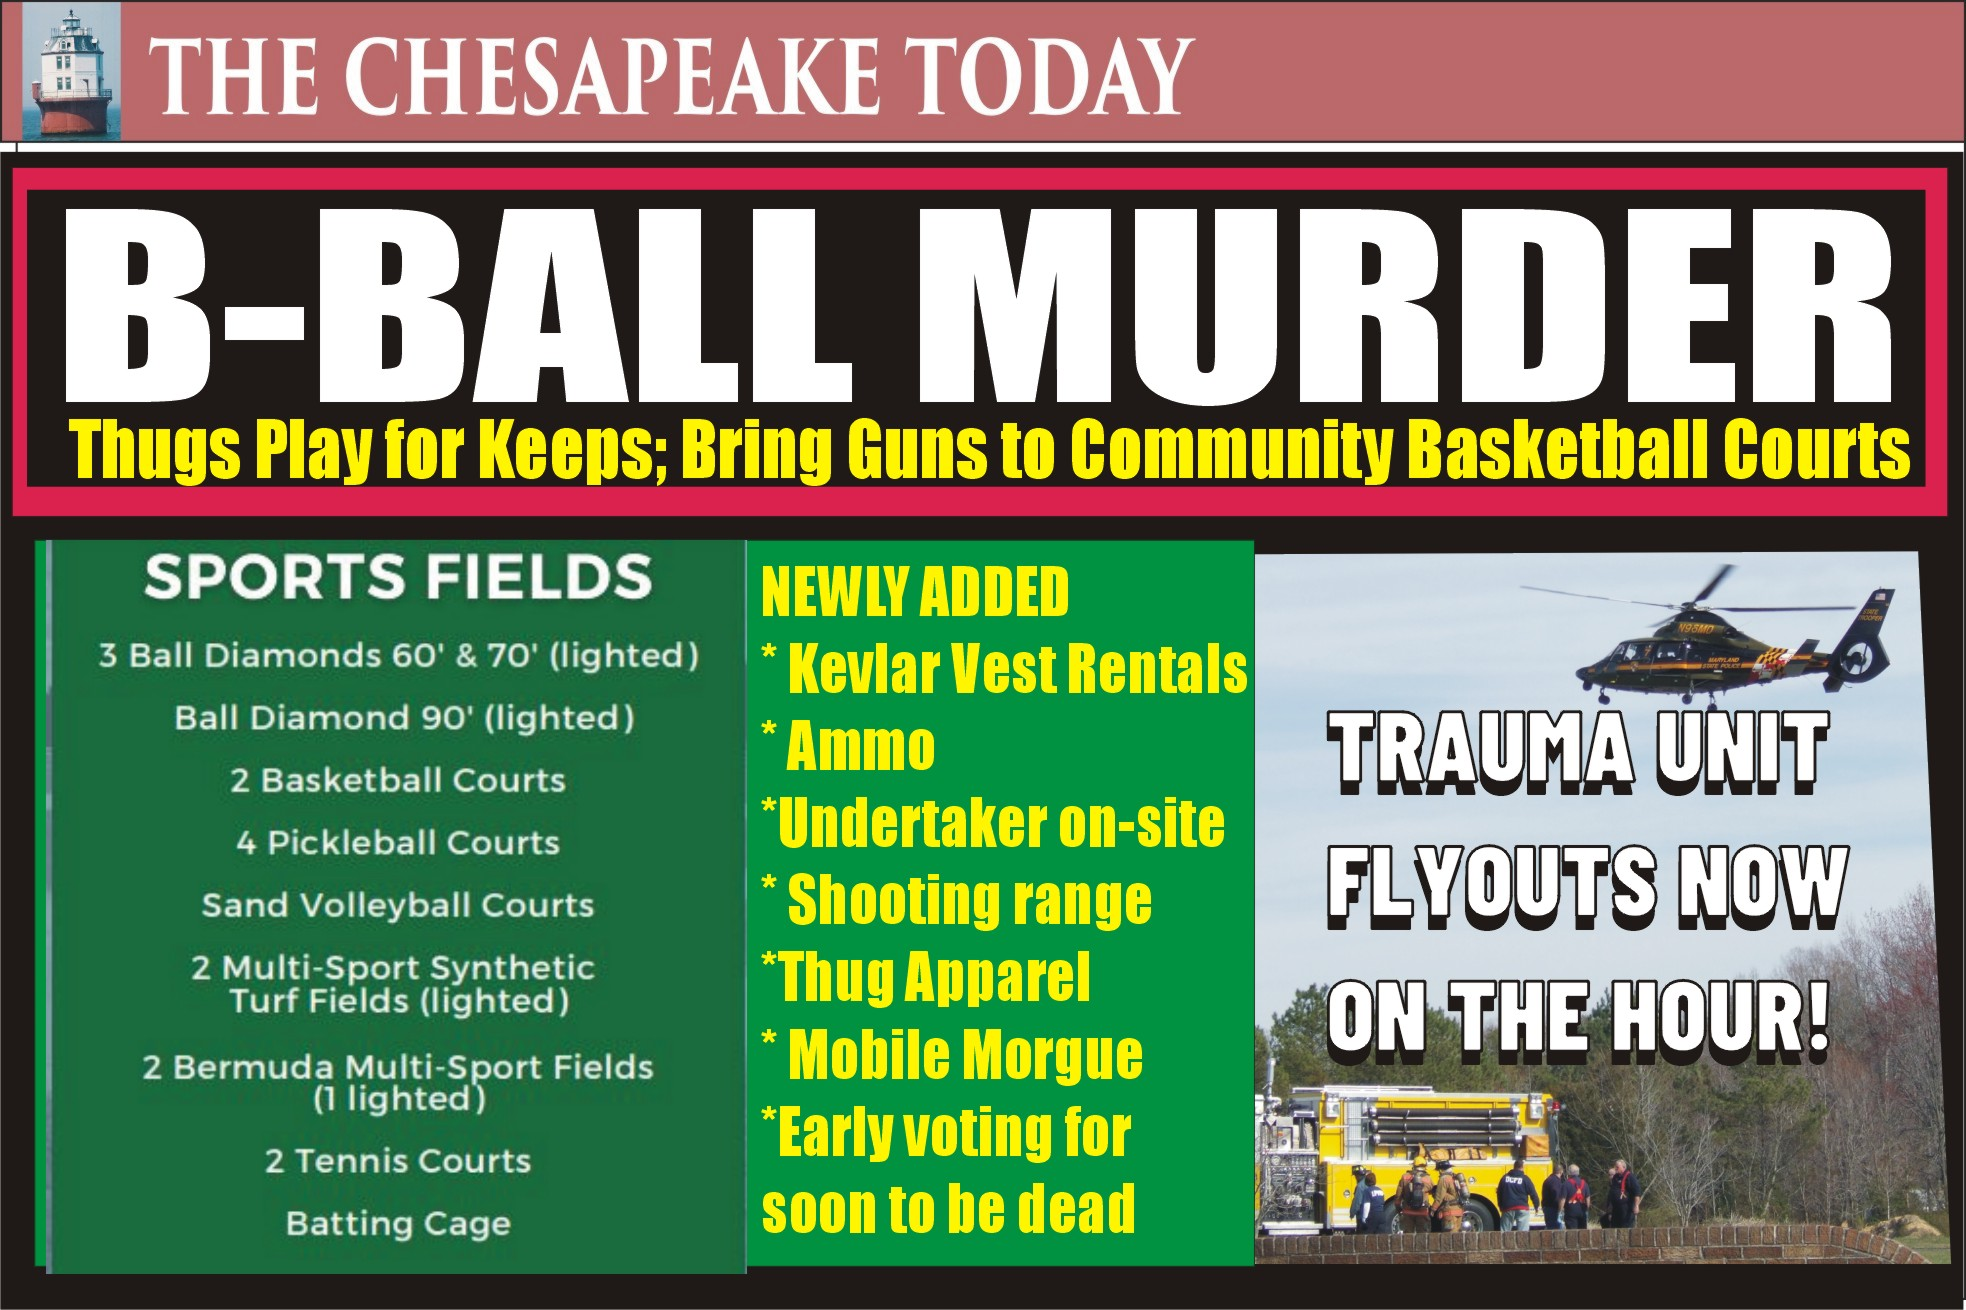 MURDER USA: Basketball beef turns to homicide! TWO SHOOTINGS IN ST. MARY'S COUNTY: Two adults have been flown to trauma centers after gunfire at a teen center in Great Mills; the second scene near Lexington Park